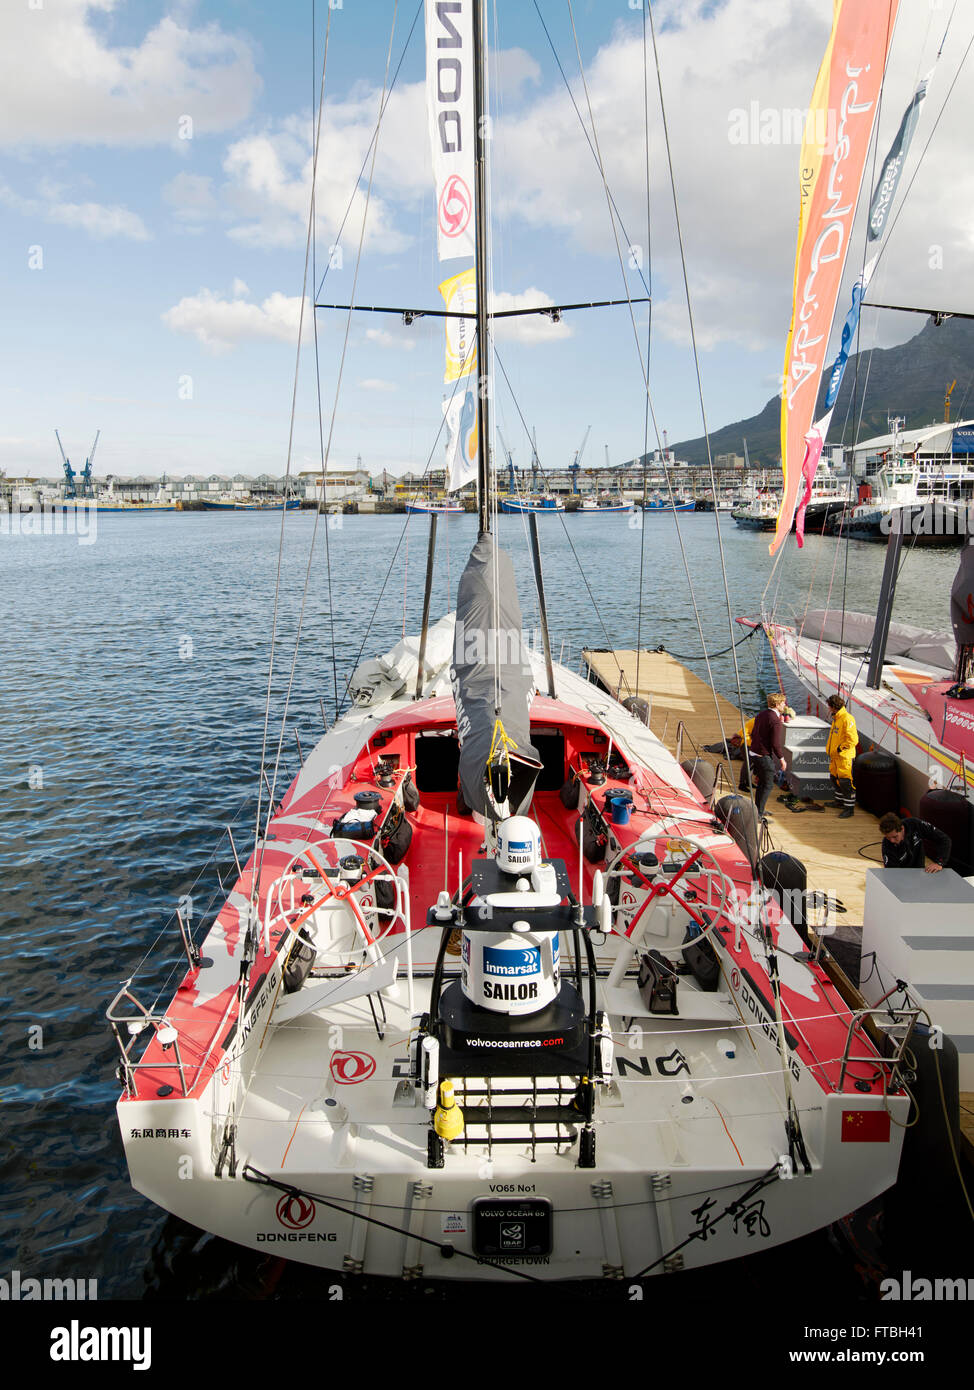 China's only sailing boat 'Volvo Ocean 65 Dongfeng' in ...